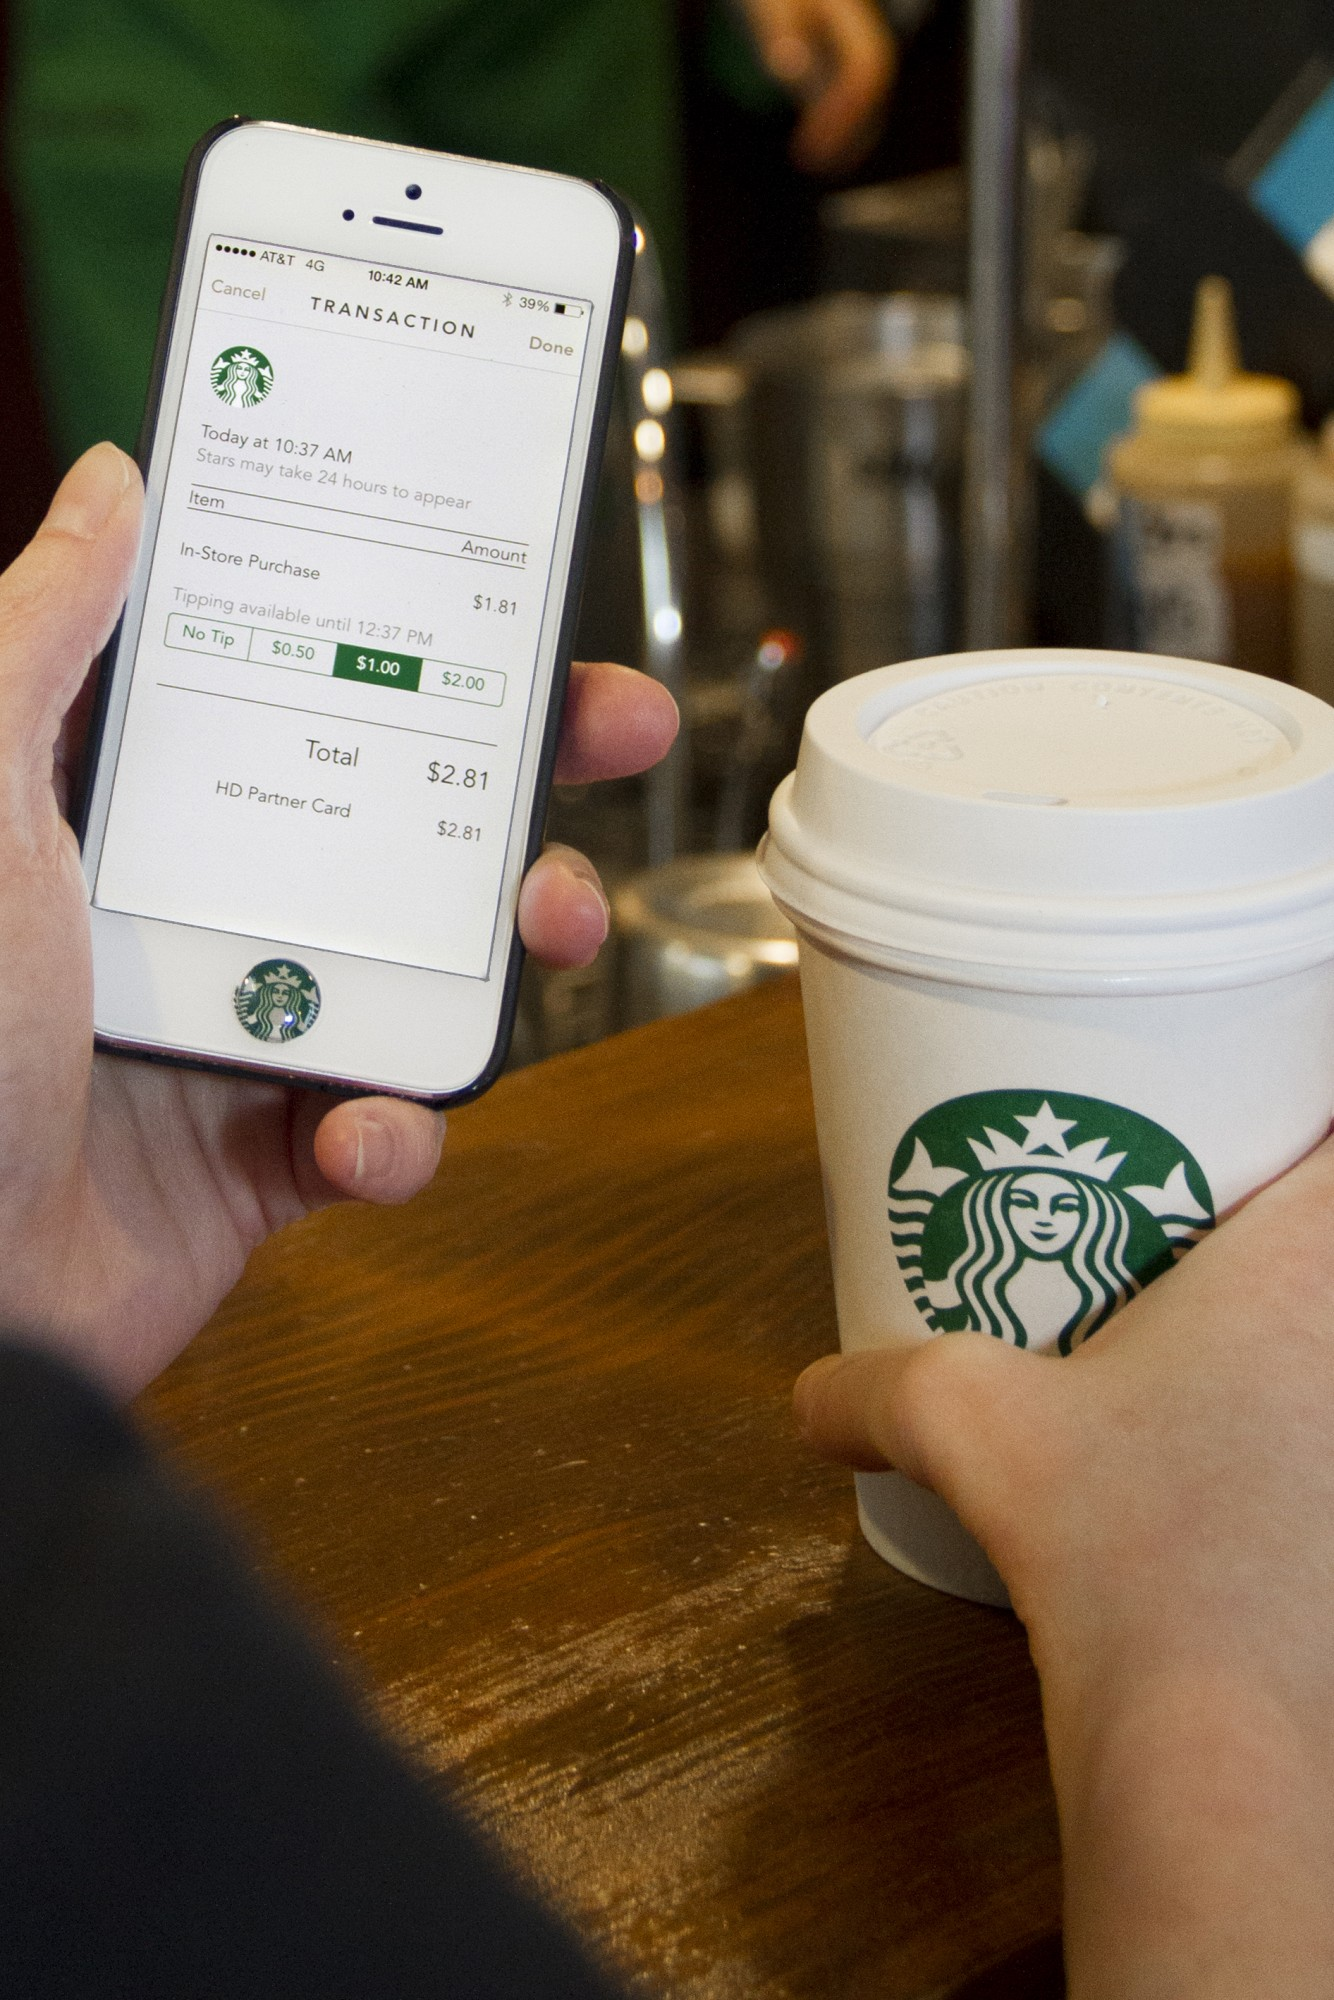 Starbucks To Update iOS App With New Design, Digital Tipping And 'Shake To Pay'